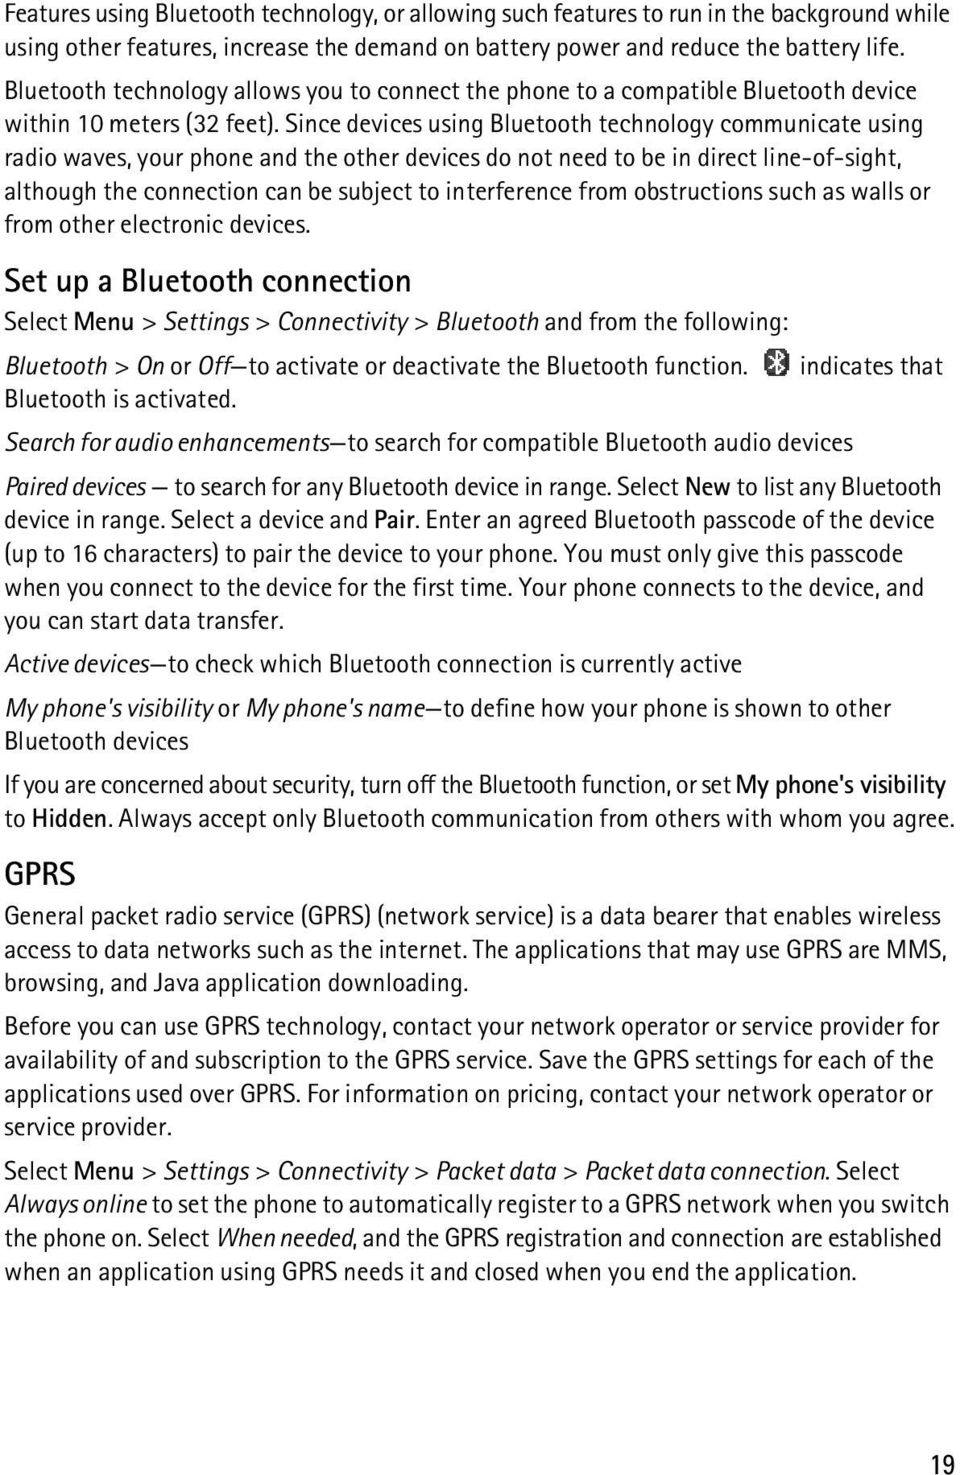 Since devices using Bluetooth technology communicate using radio waves, your phone and the other devices do not need to be in direct line-of-sight, although the connection can be subject to